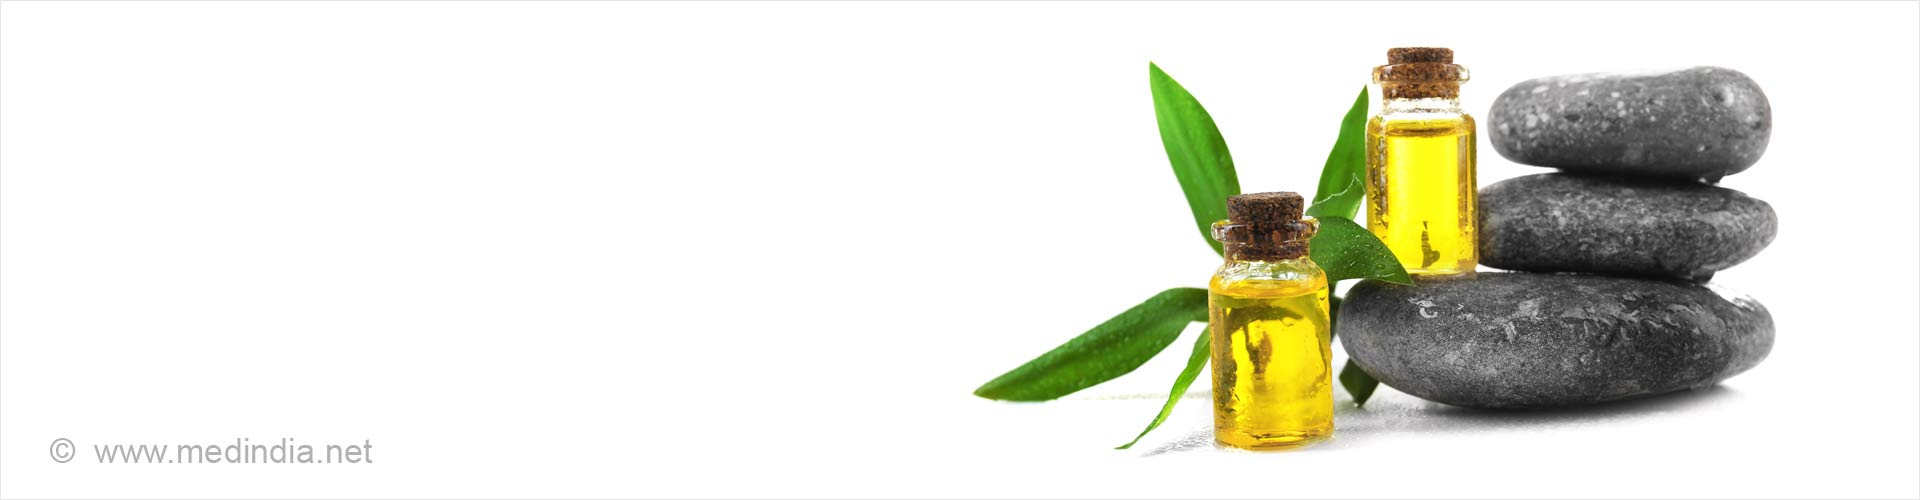 Top 15 Health Benefits of Tea Tree Oil (Melaleuca Oil)